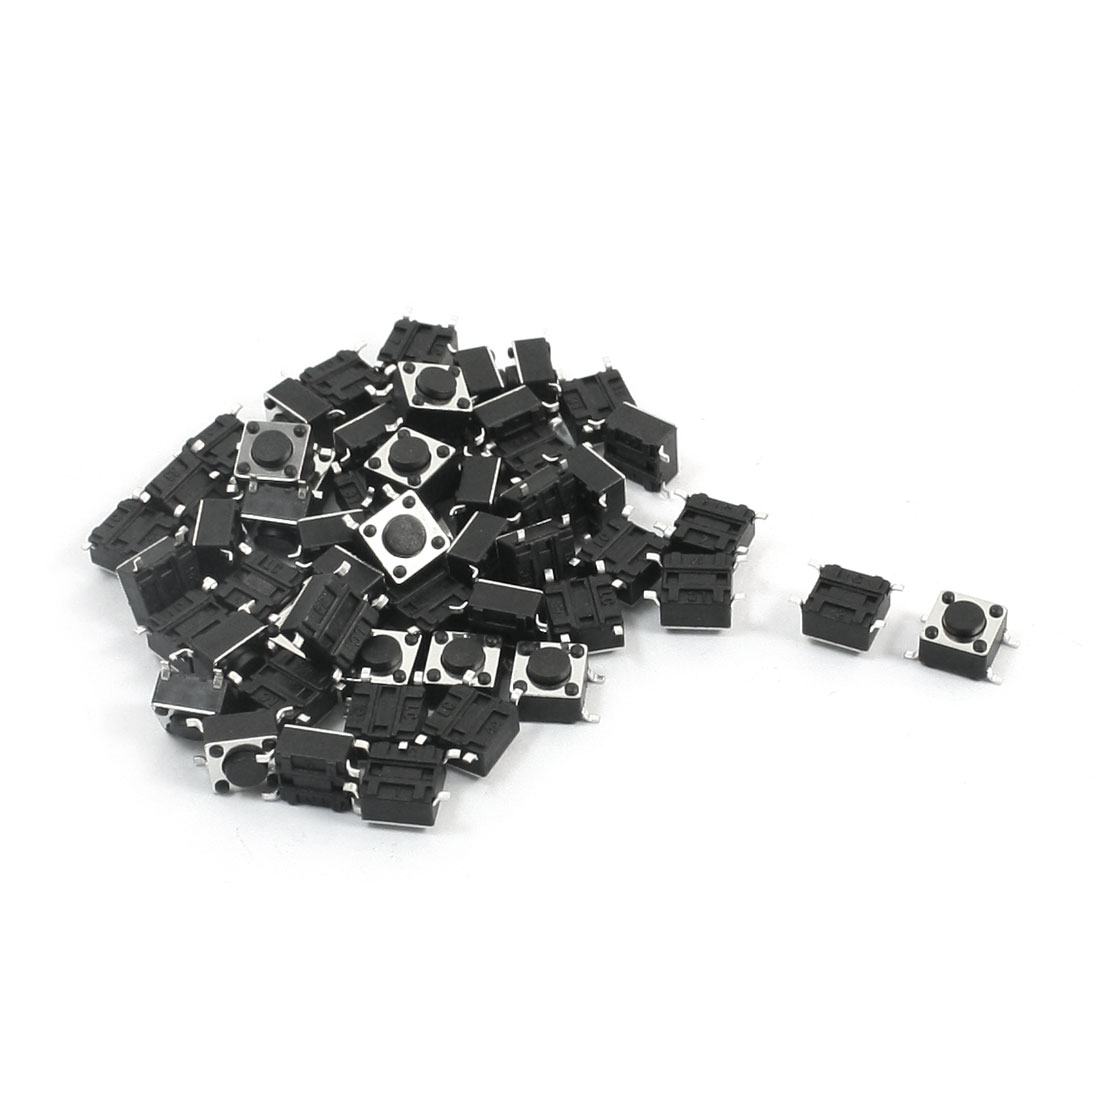 55Pcs Momentary Tact Tactile Push Button Switch 6mmx6mmx4.3mm 4-pin